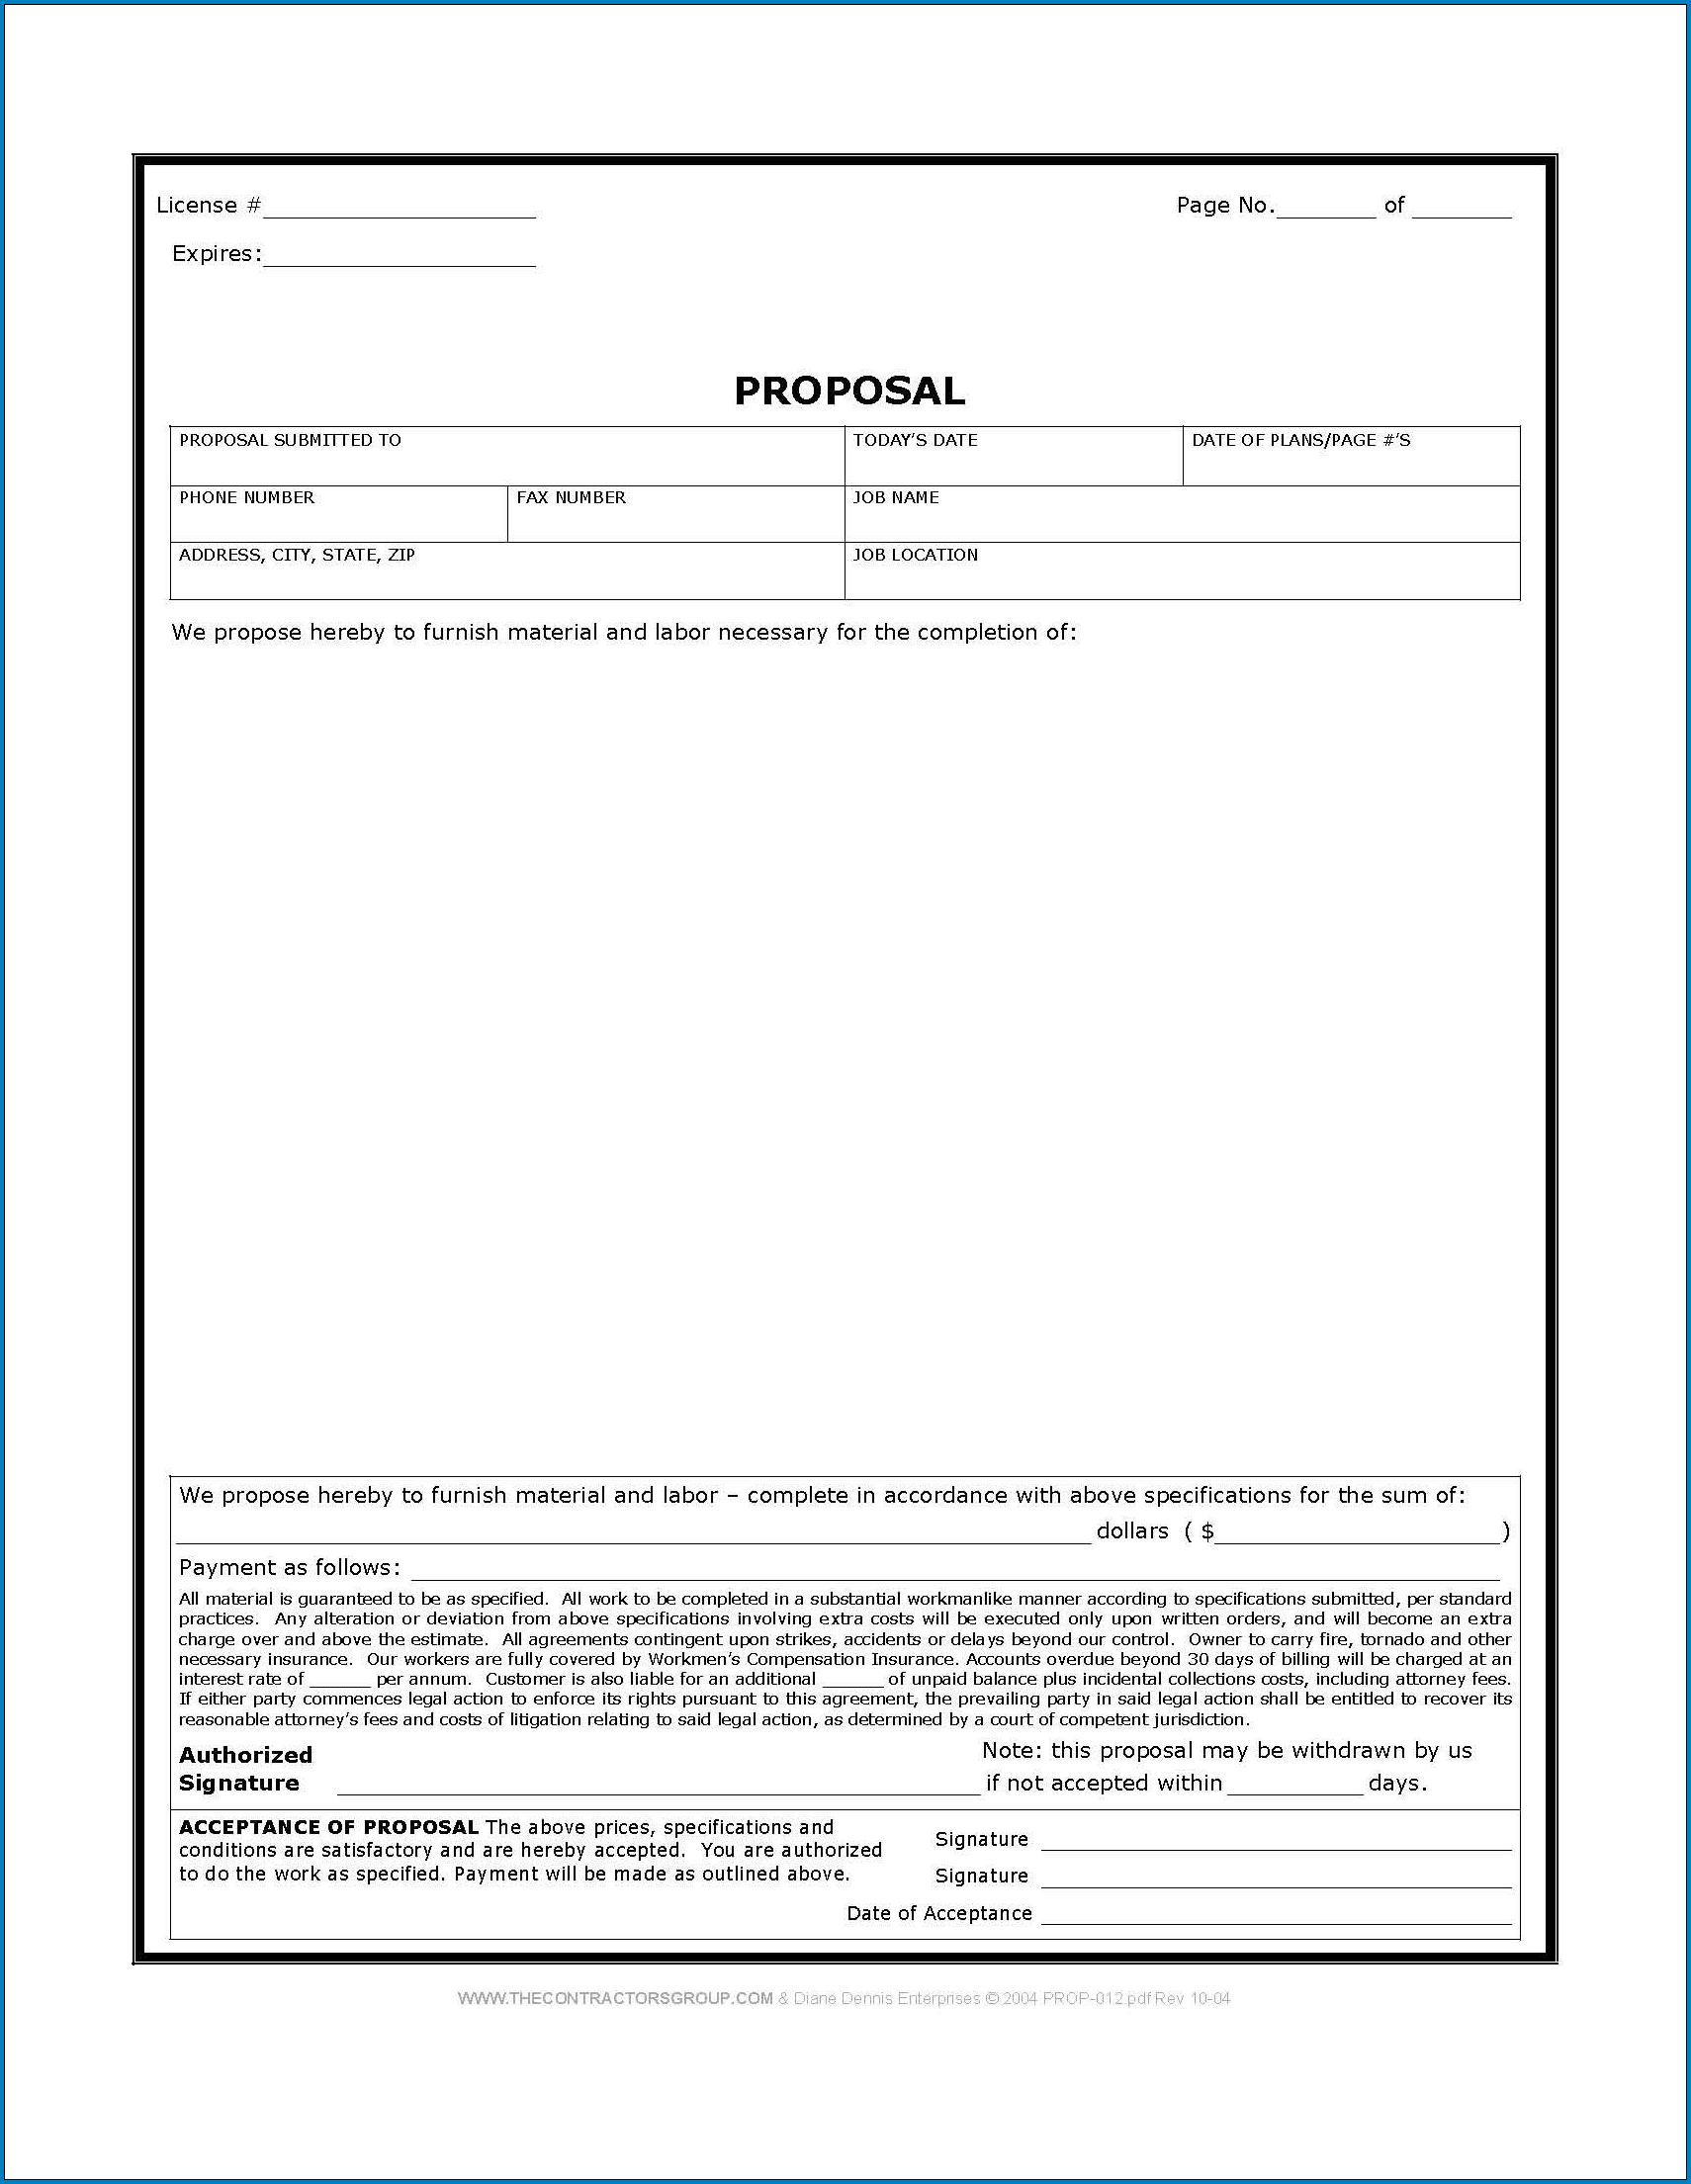 Example of Construction Proposal Template